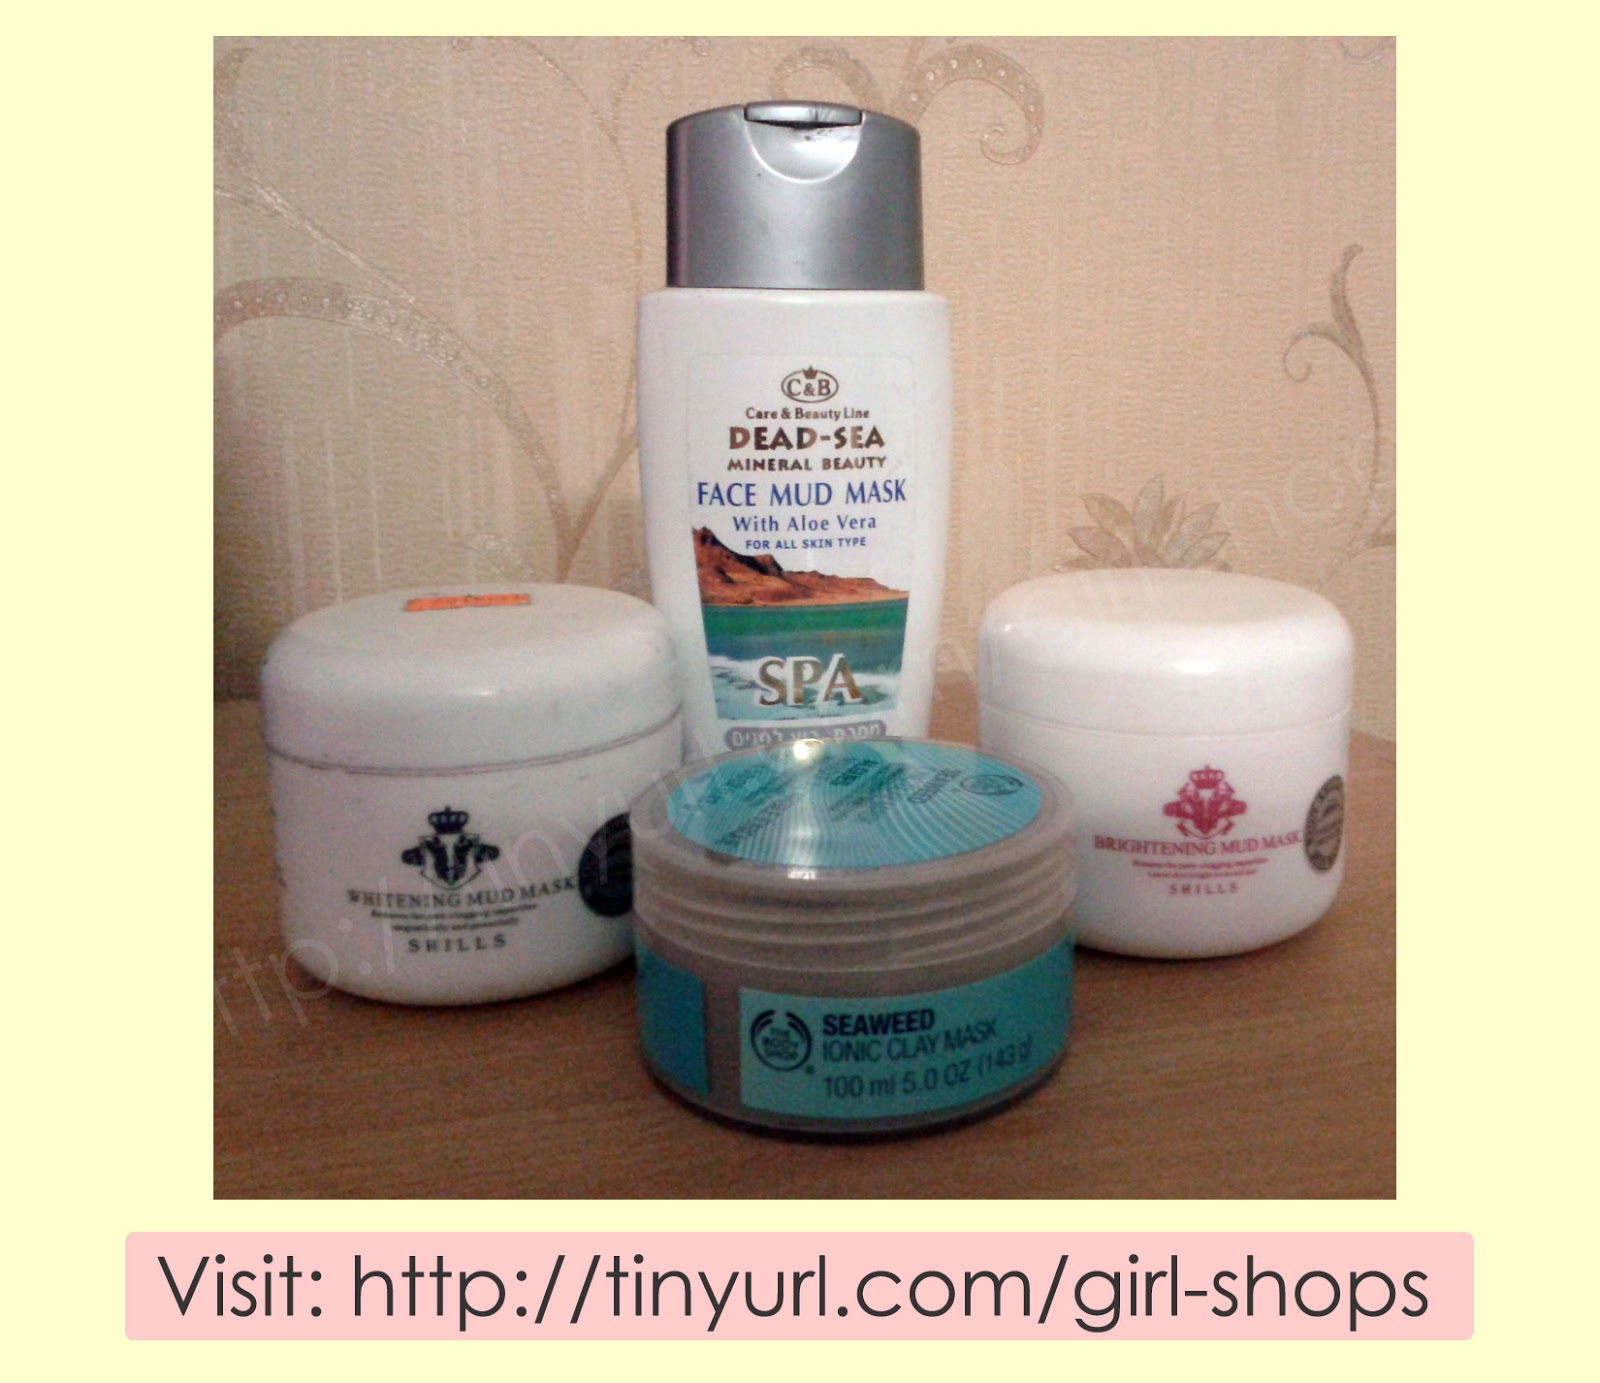 Justifying Shopaholism     : The Body Shop Seaweed Ionic